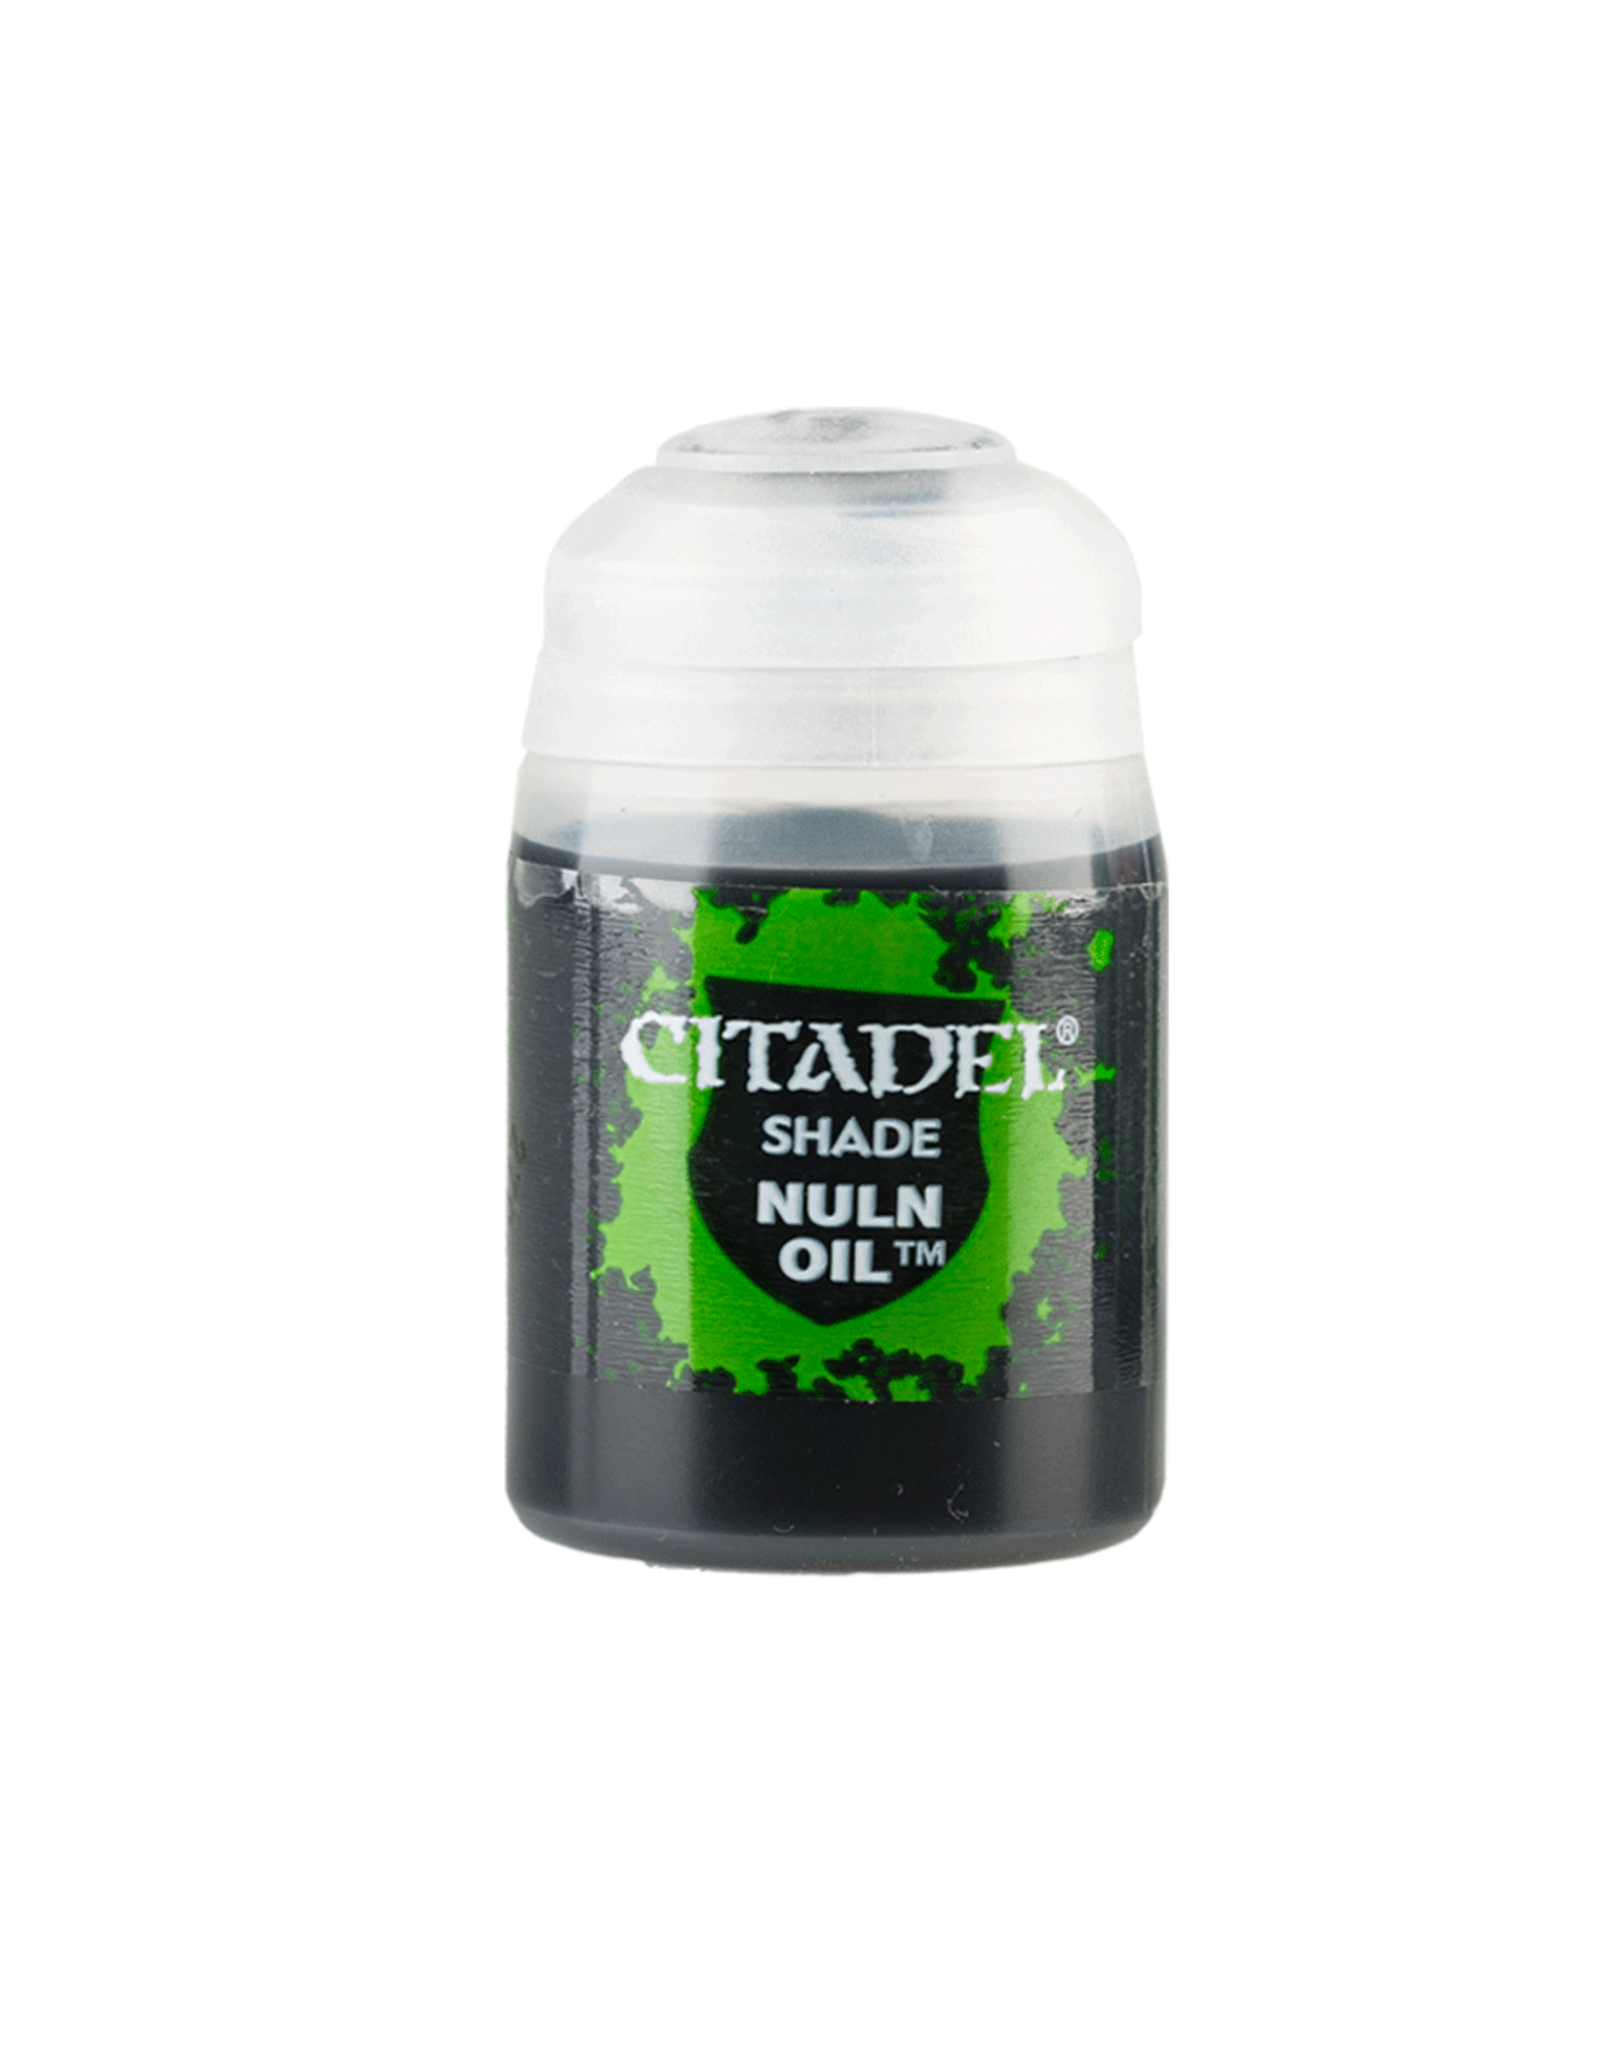 Citadel Citadel Paints: Shade -  Nuln Oil